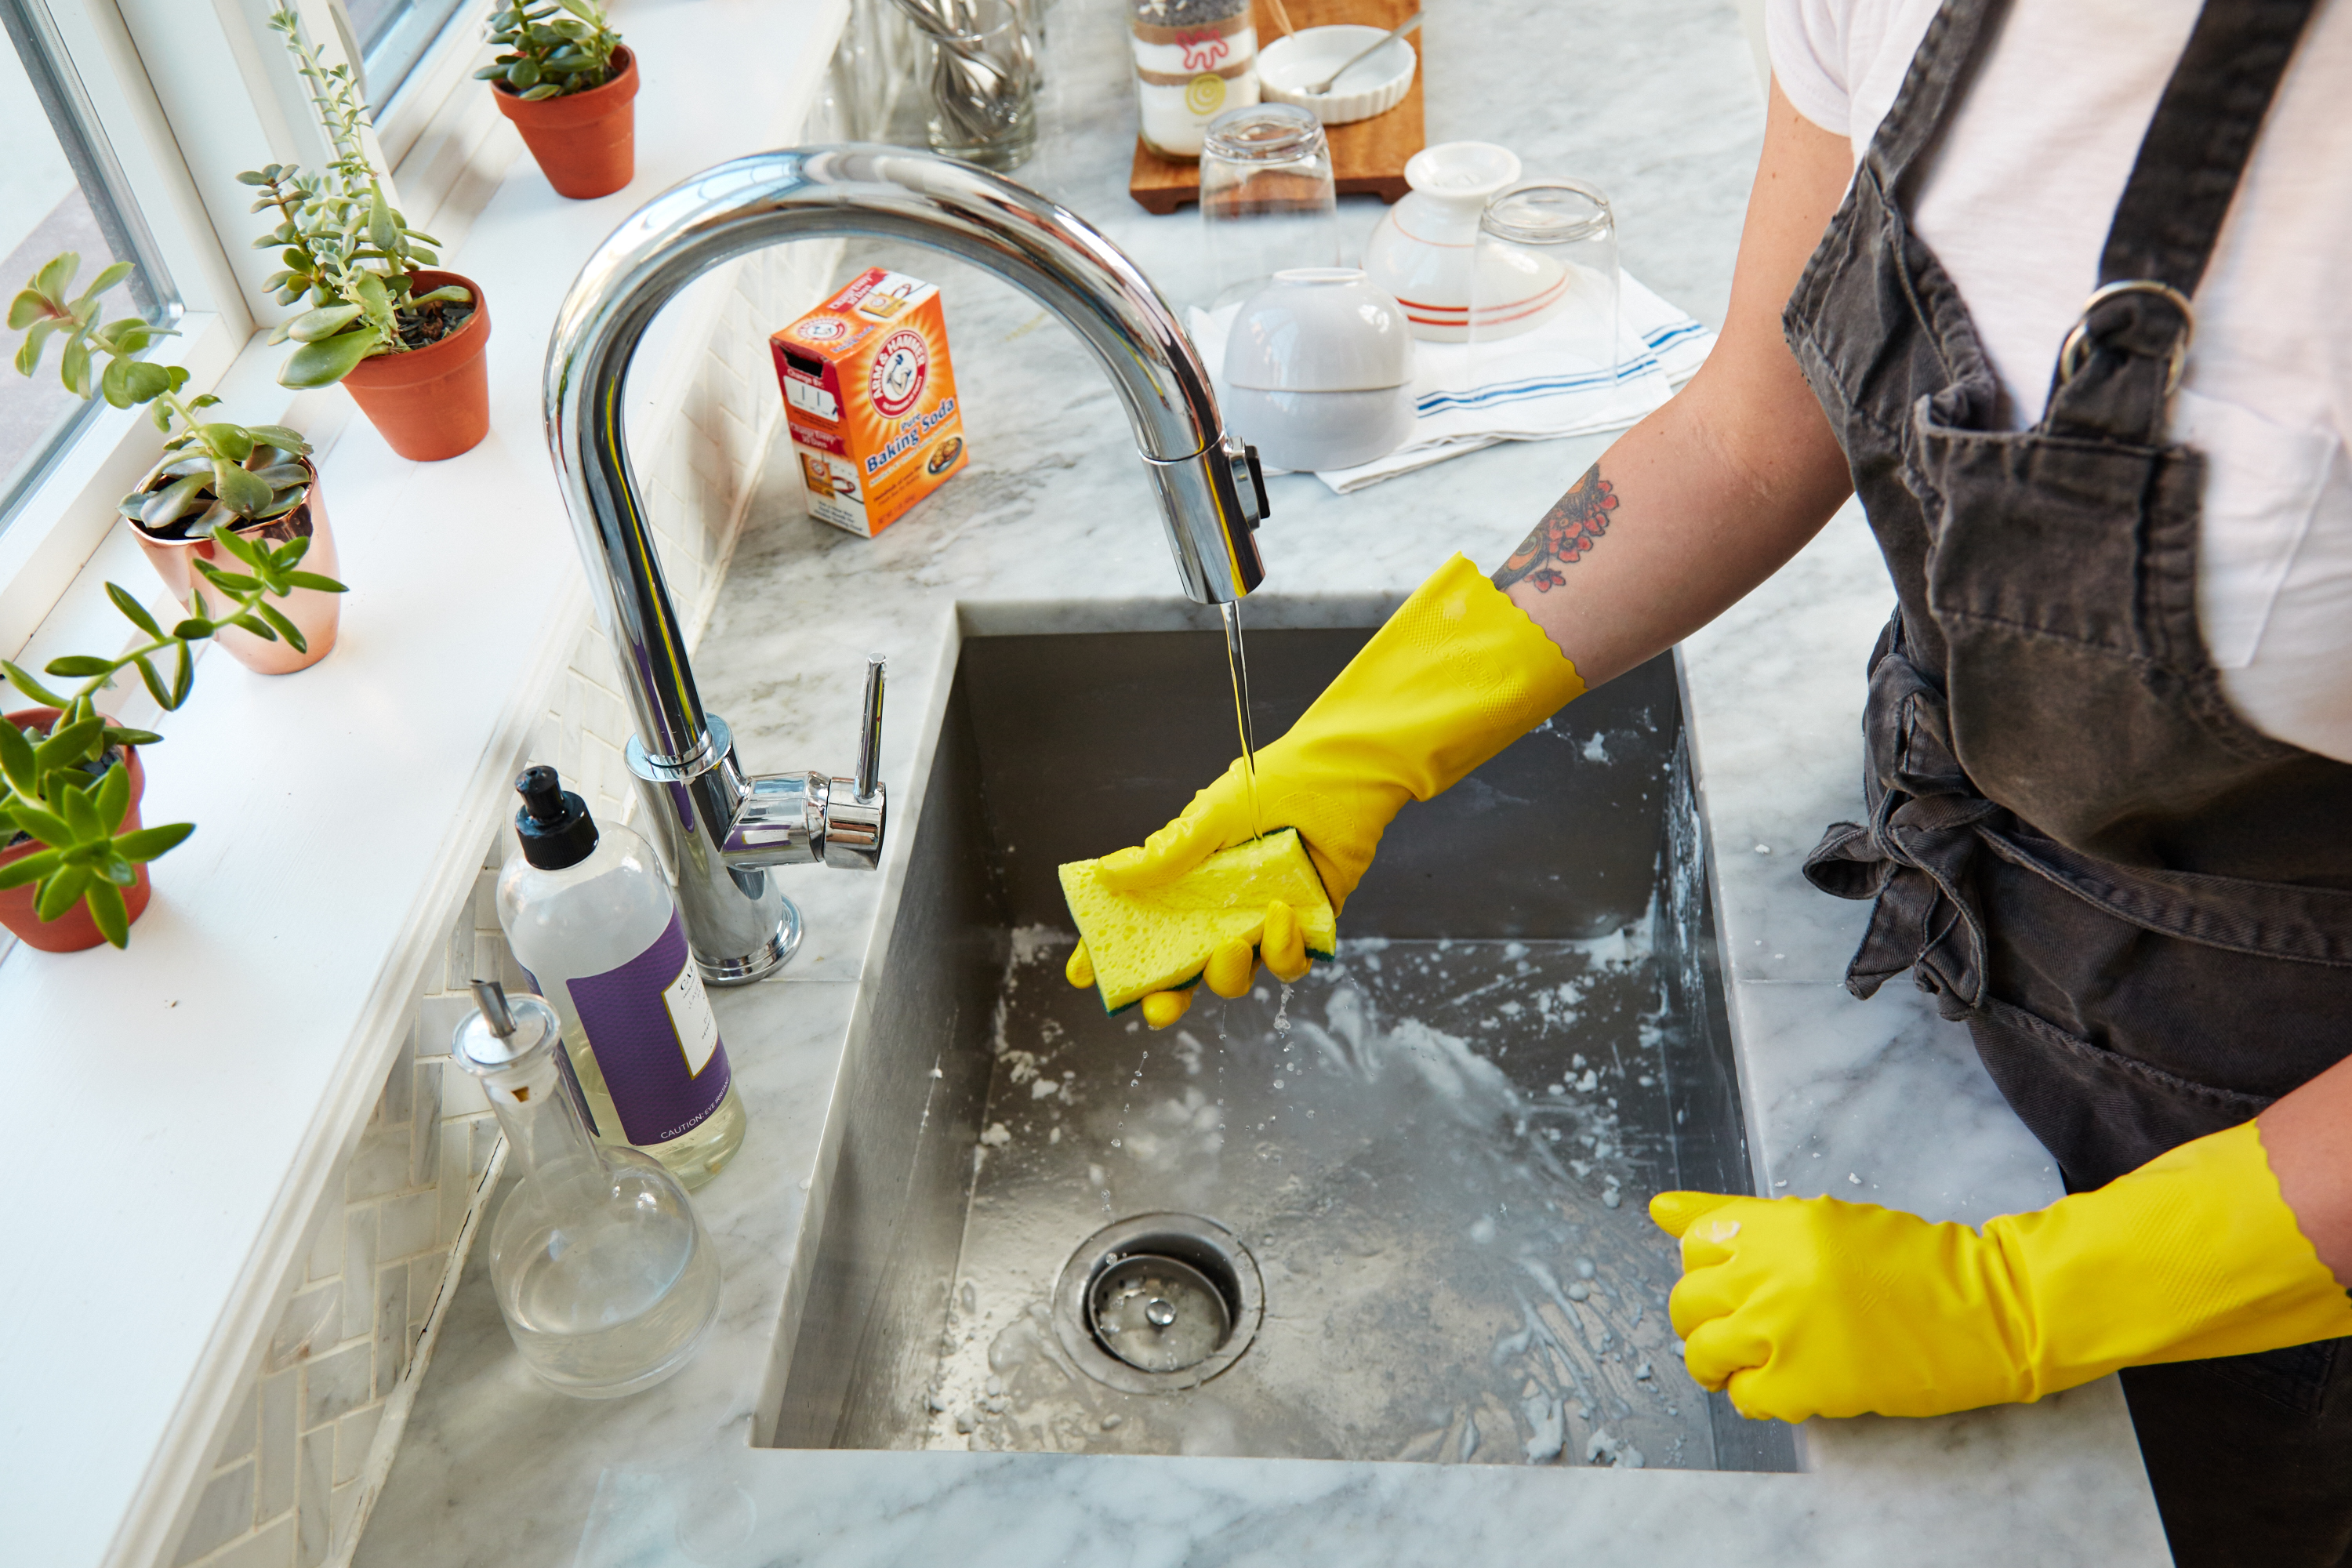 5 Surprising Things I Learned from Washing Dishes with Gloves for a Week